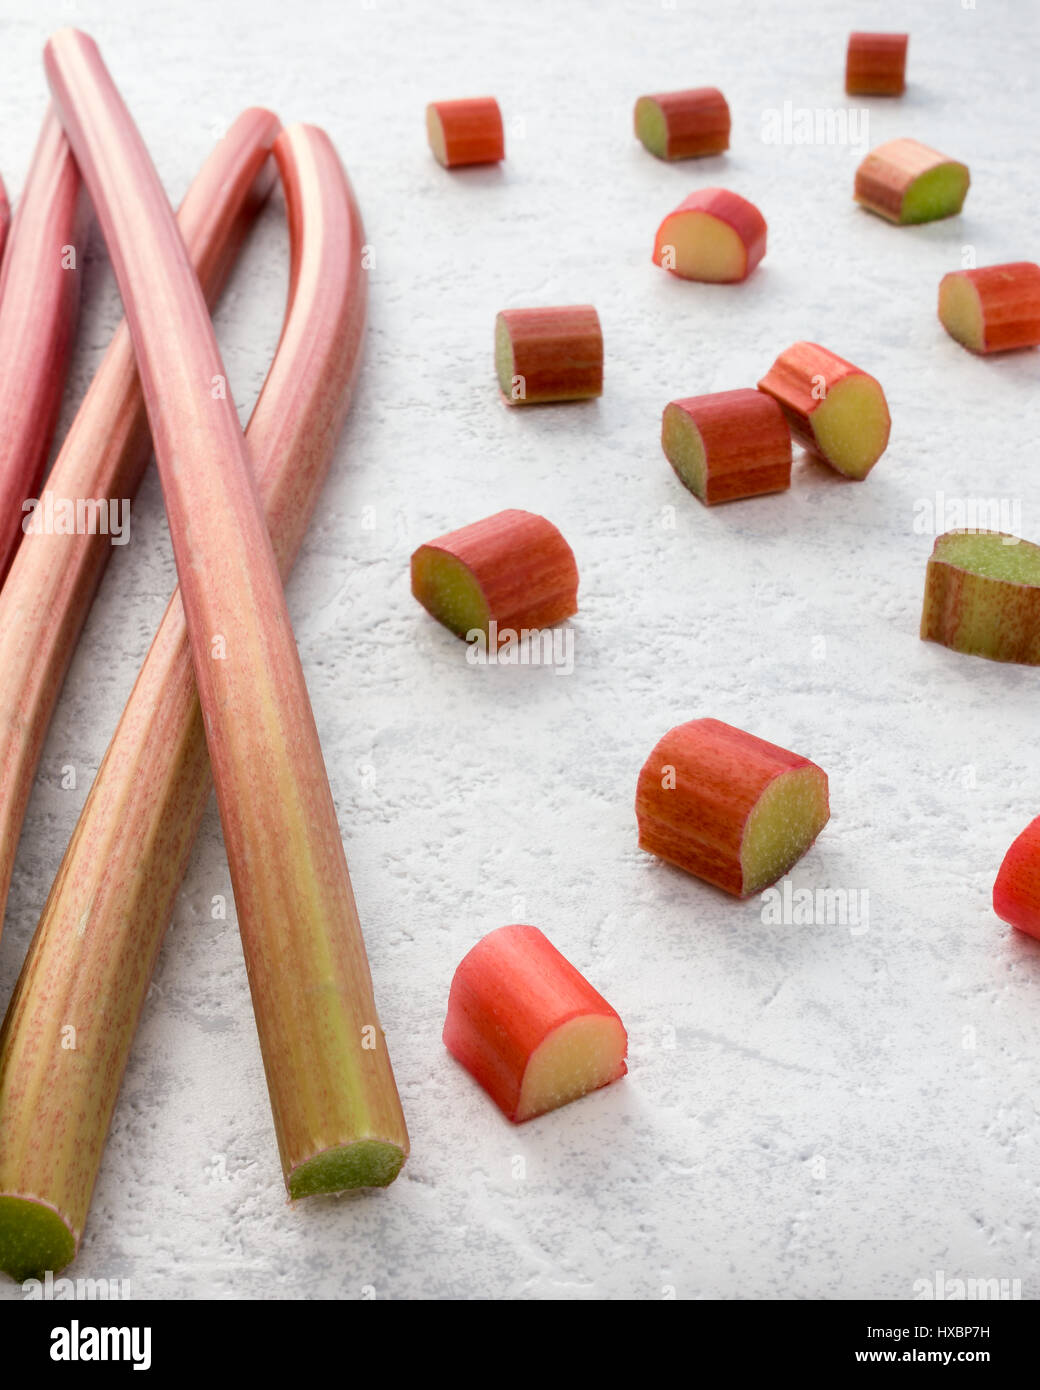 Fresh rhubarb and cut pieces of rhubarb on textured white marbled background. Shallow depth of field. - Stock Image